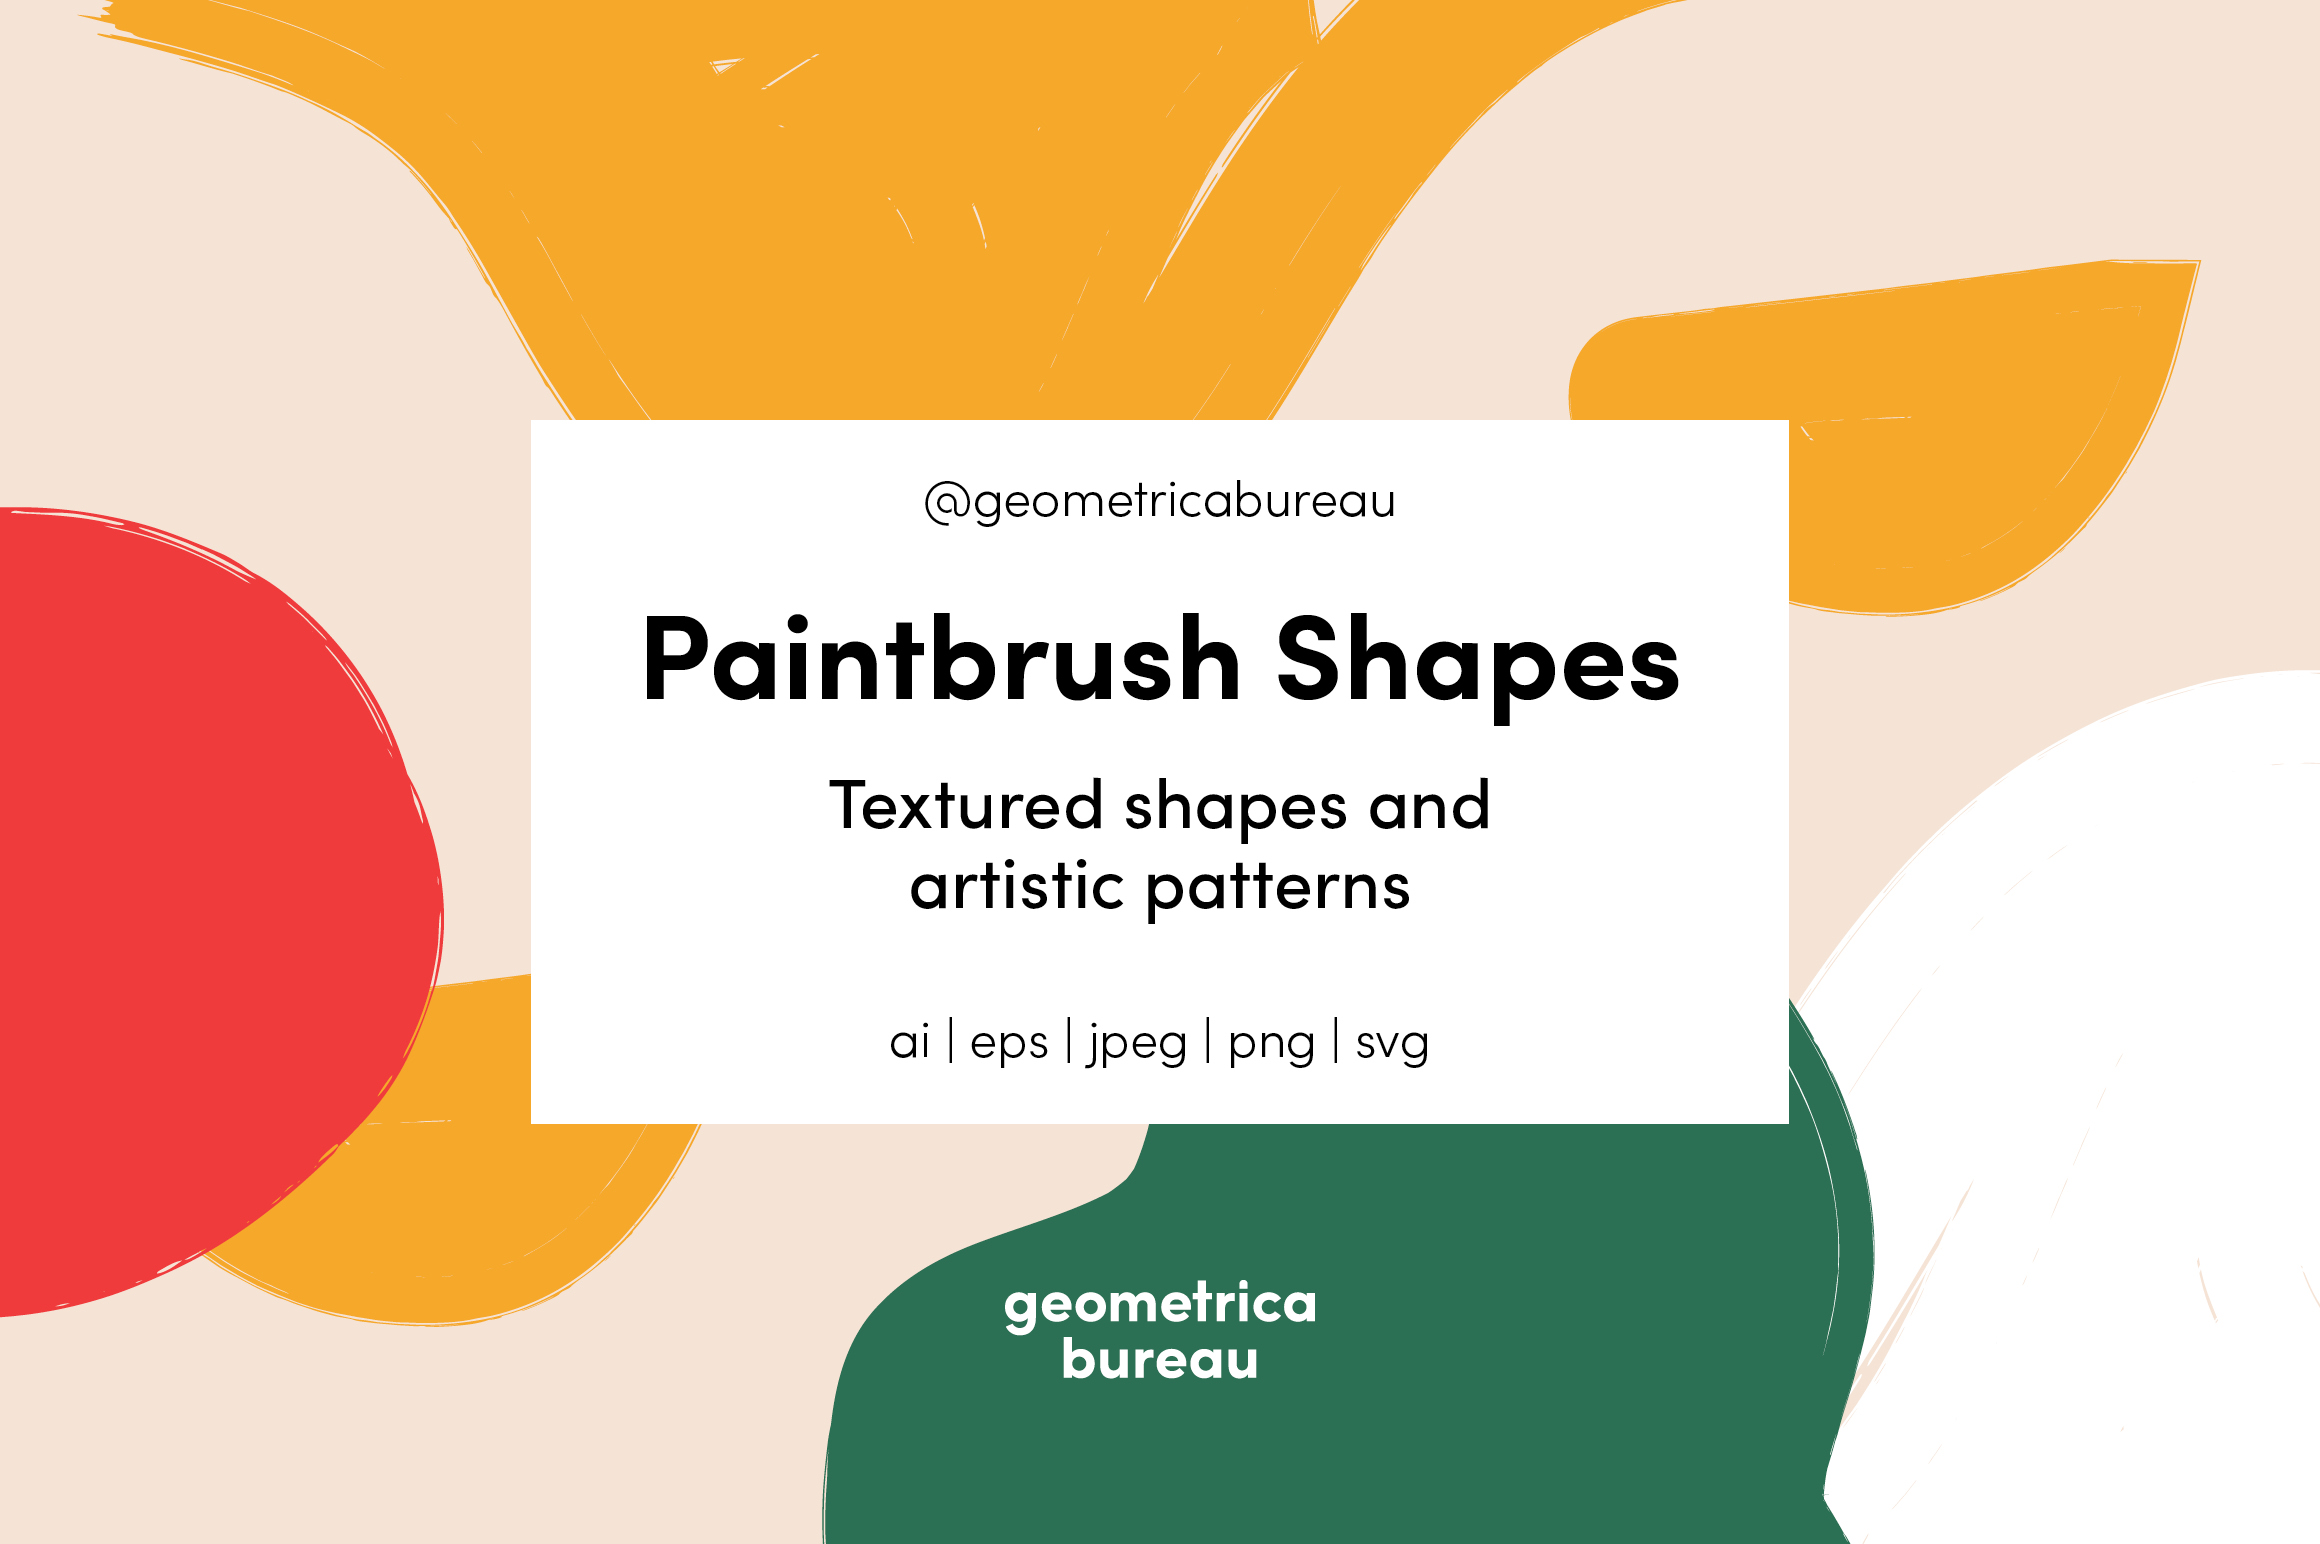 Paintbrush Shapes